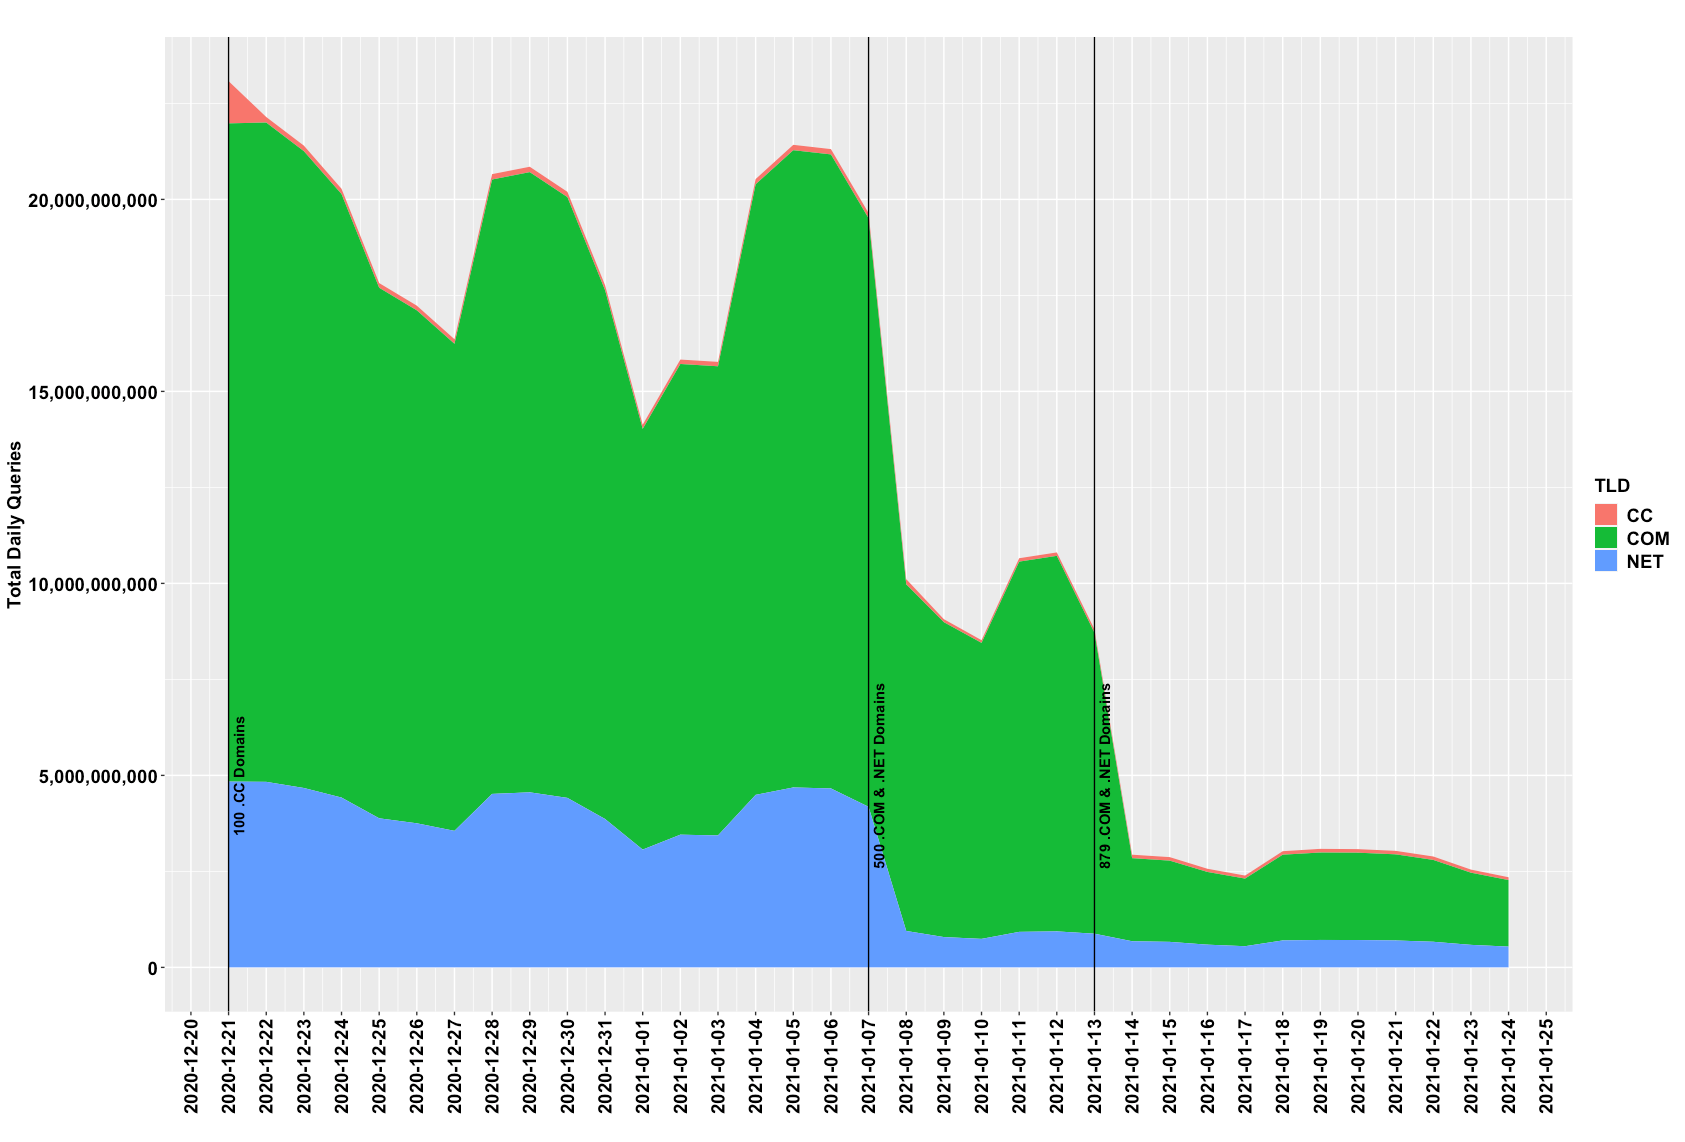 Figure 1 below shows the amount of botnet traffic Verisign authoritative name servers received prior to intervention, and throughout the process of registering, delegating and sinkholing the botnet domain names.